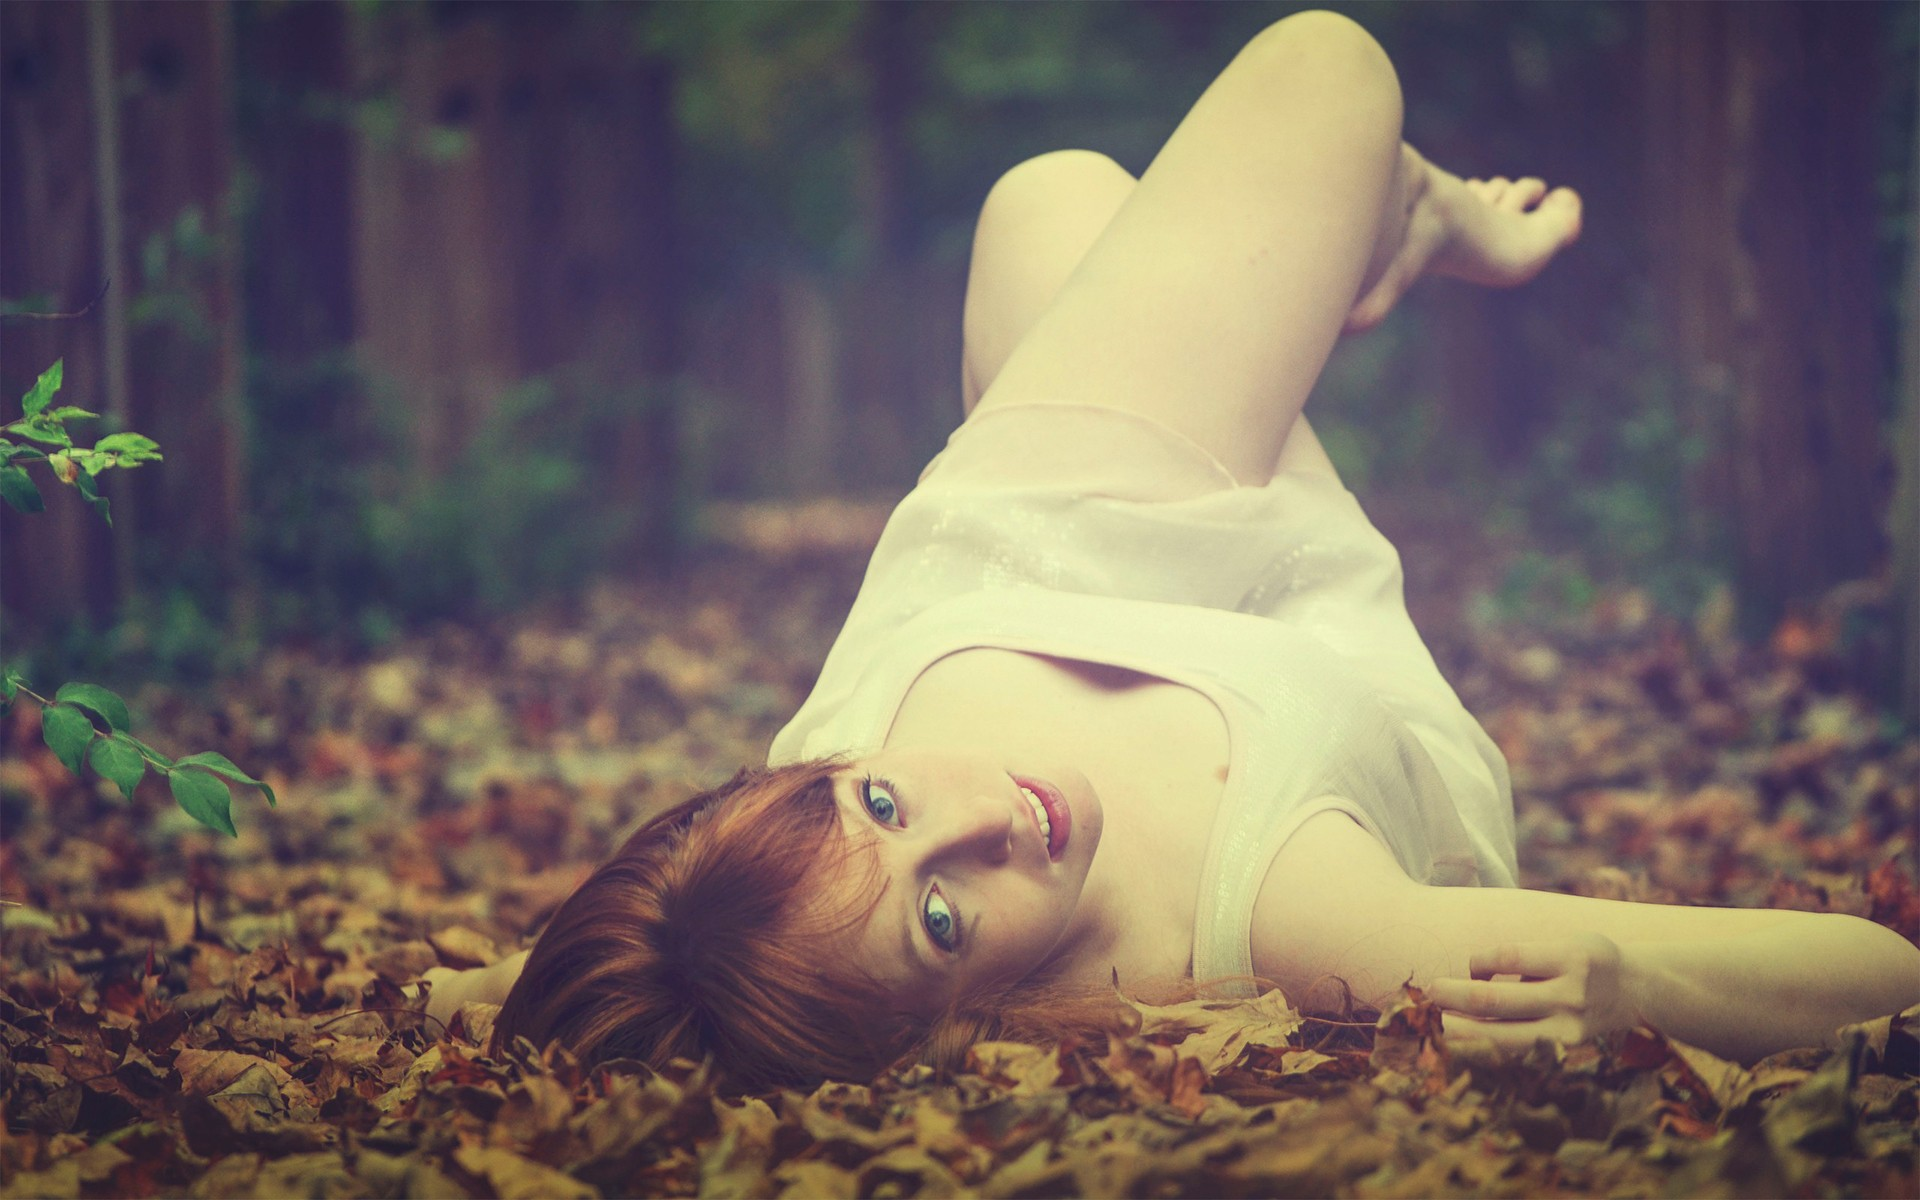 General 1920x1200 barefoot women lying down women outdoors depth of field nature leaves fall redhead dress white dress legs up blue eyes